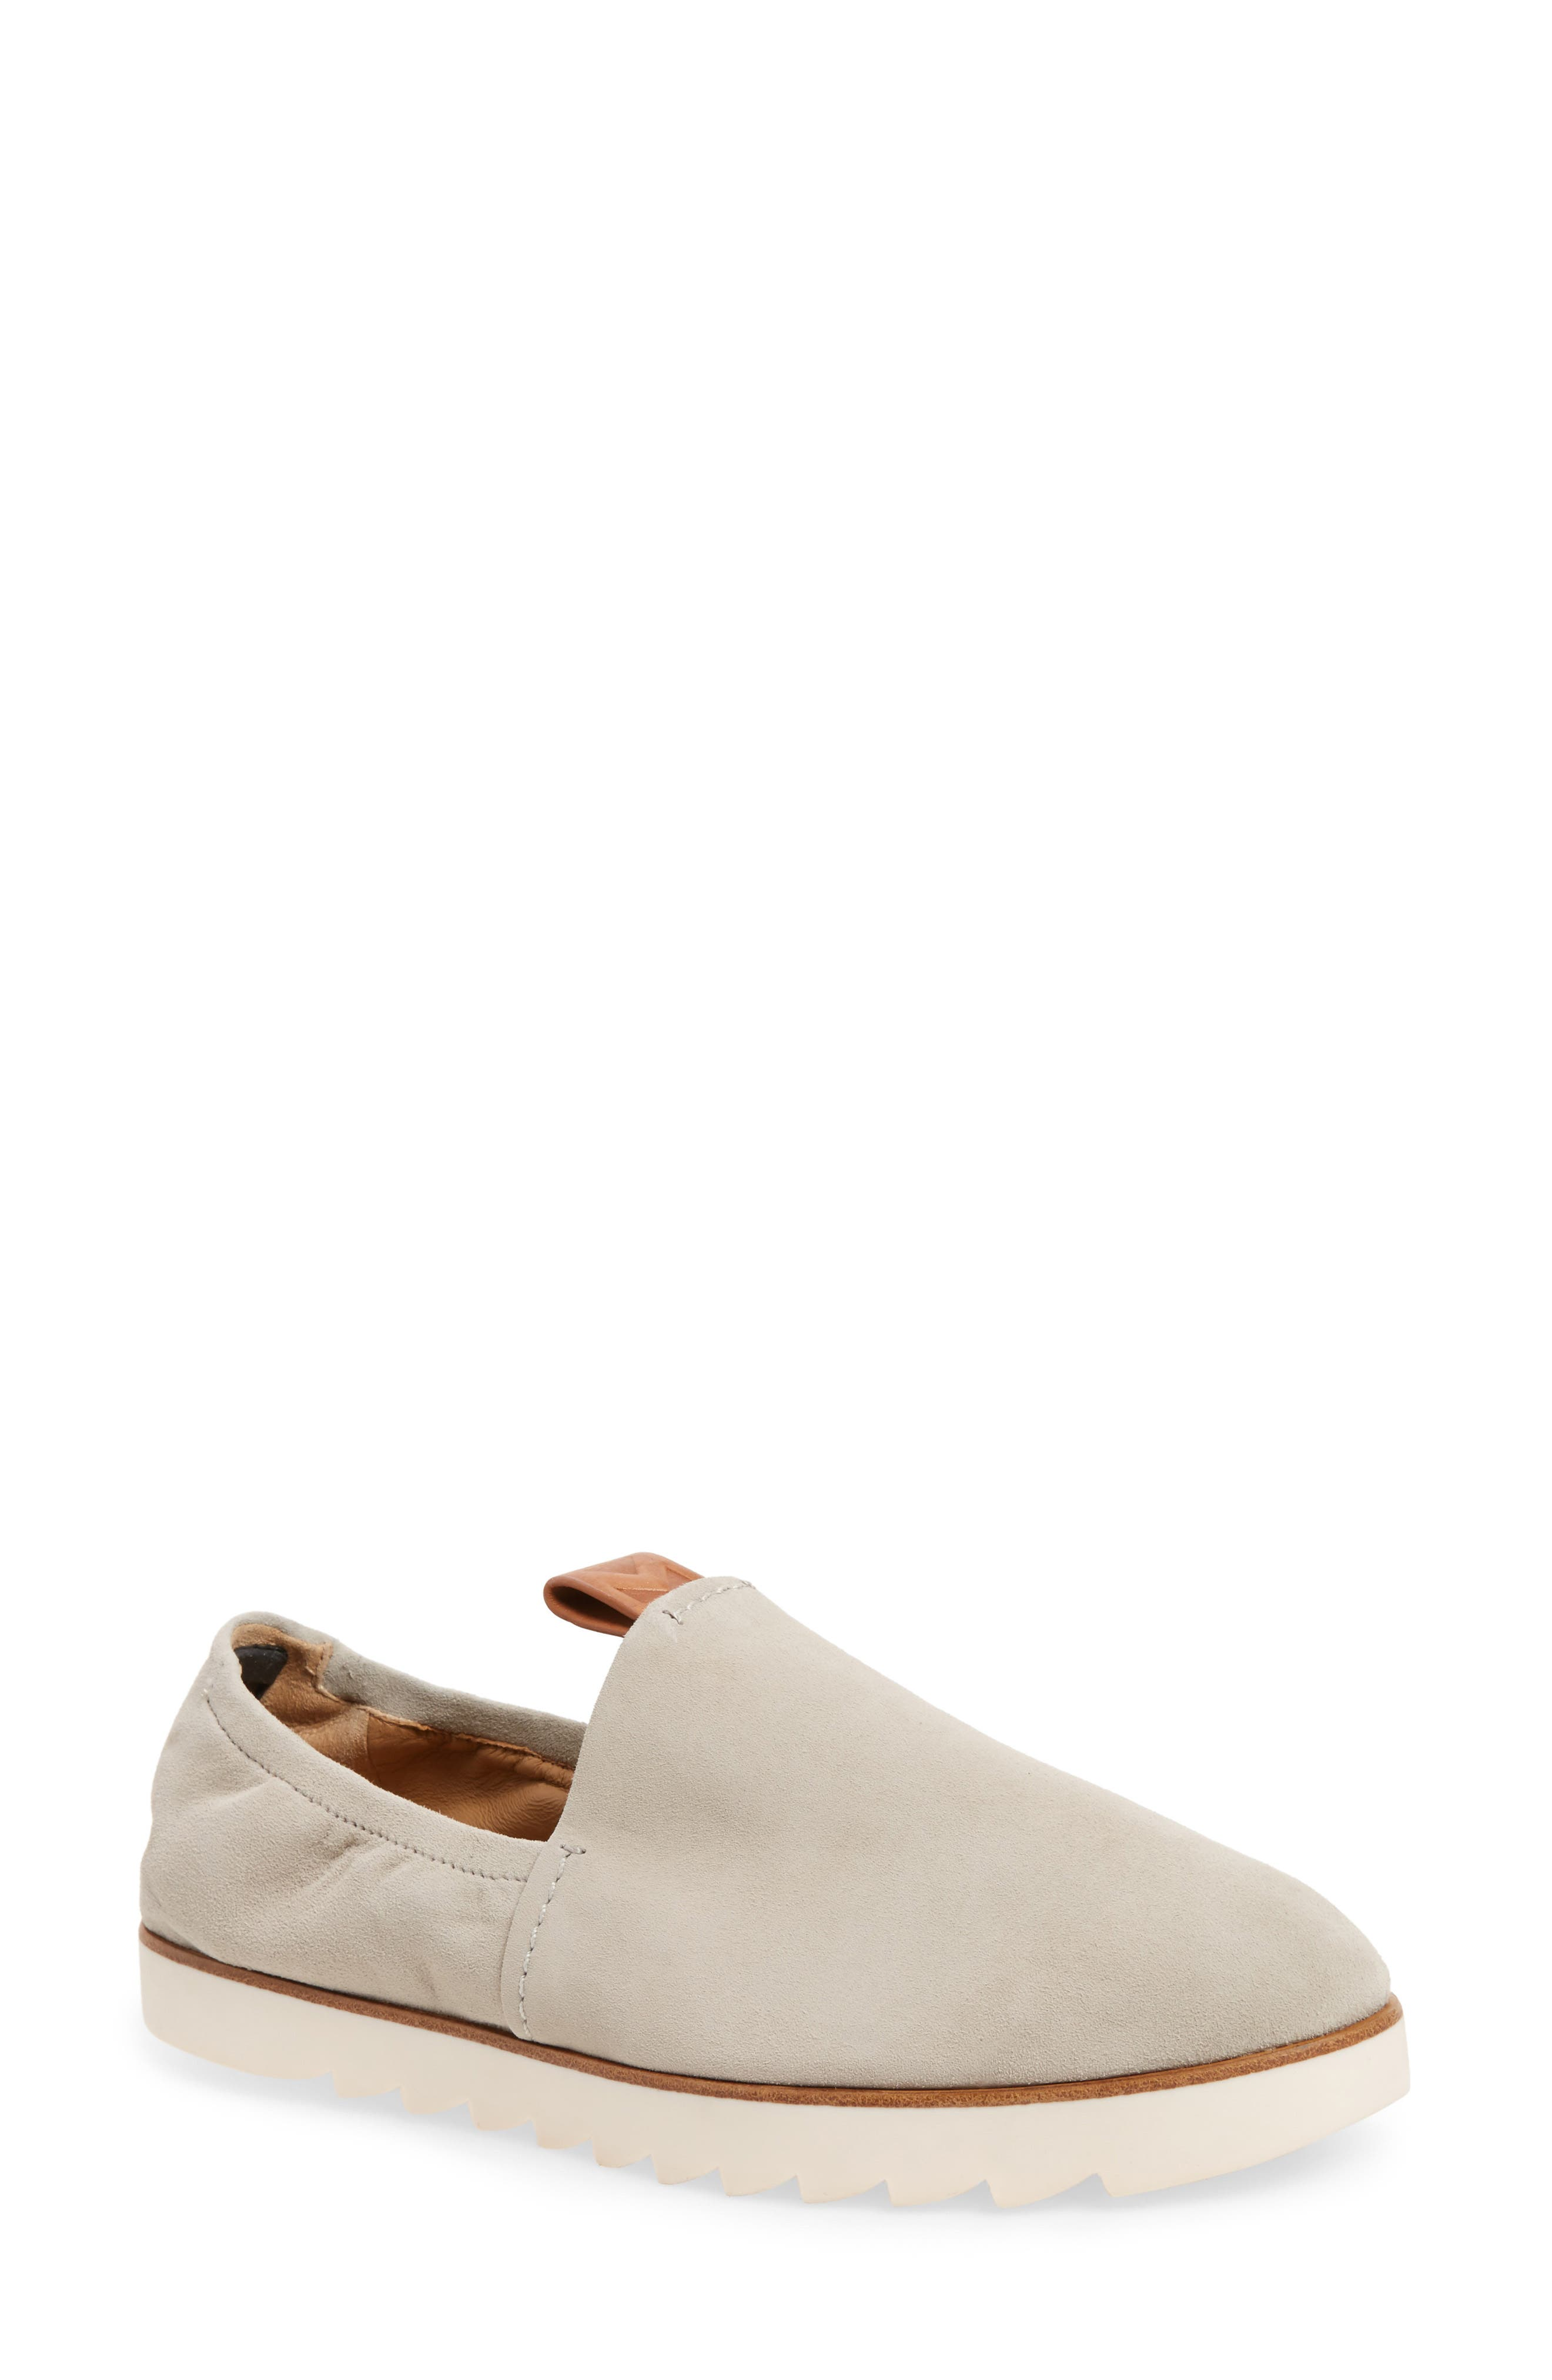 MERCEDES CASTILLO Clelia Slip-On Sneaker